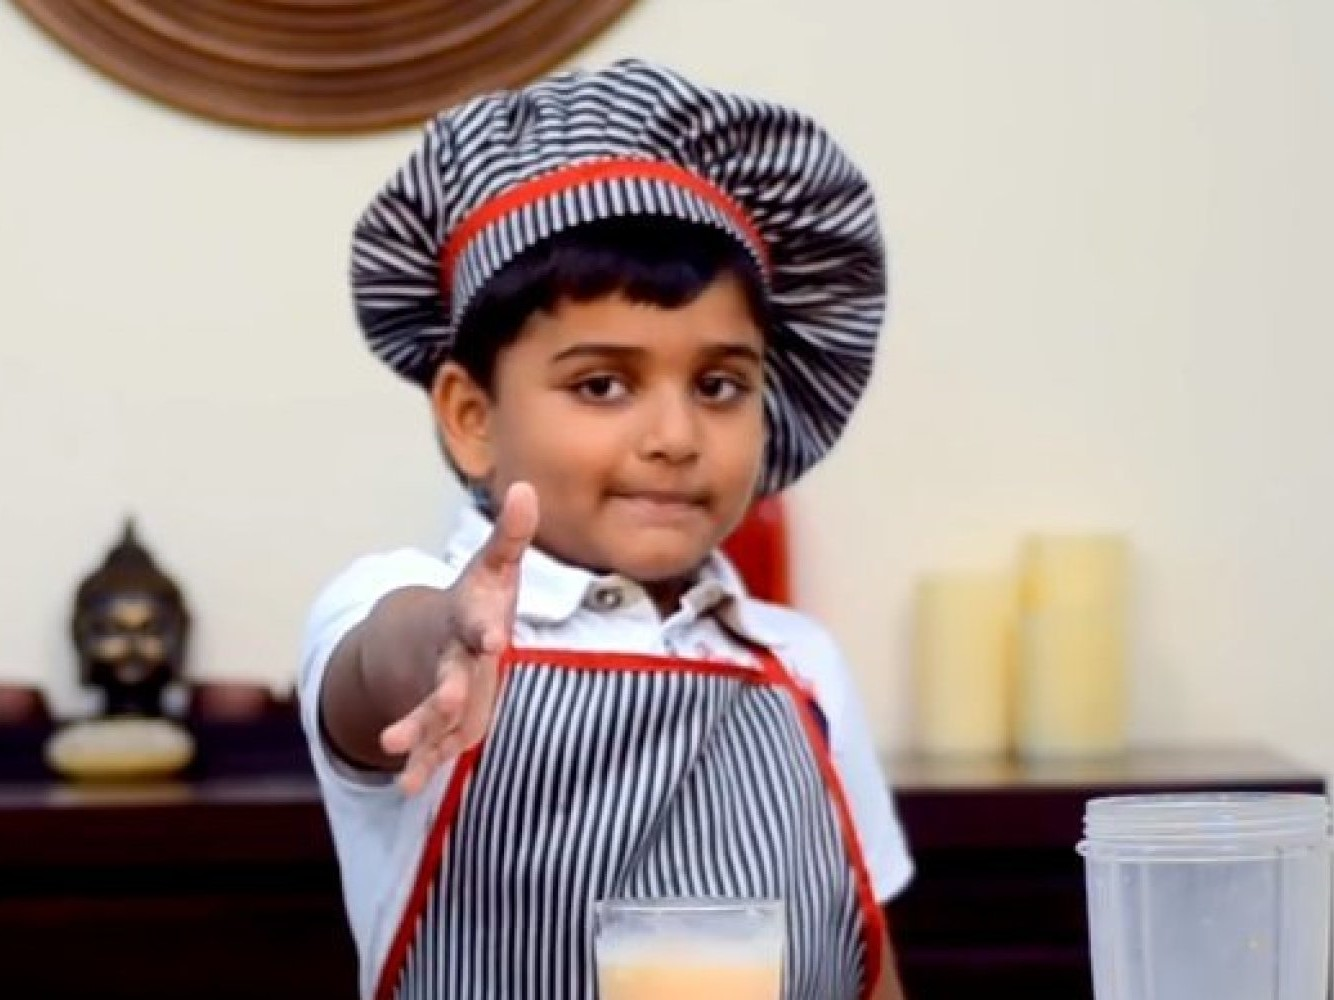 A 6 Year Old Kid, Kid Is Running His Own YouTube Channel, Kichatube, Little chef, Youngest Chef, Kicha